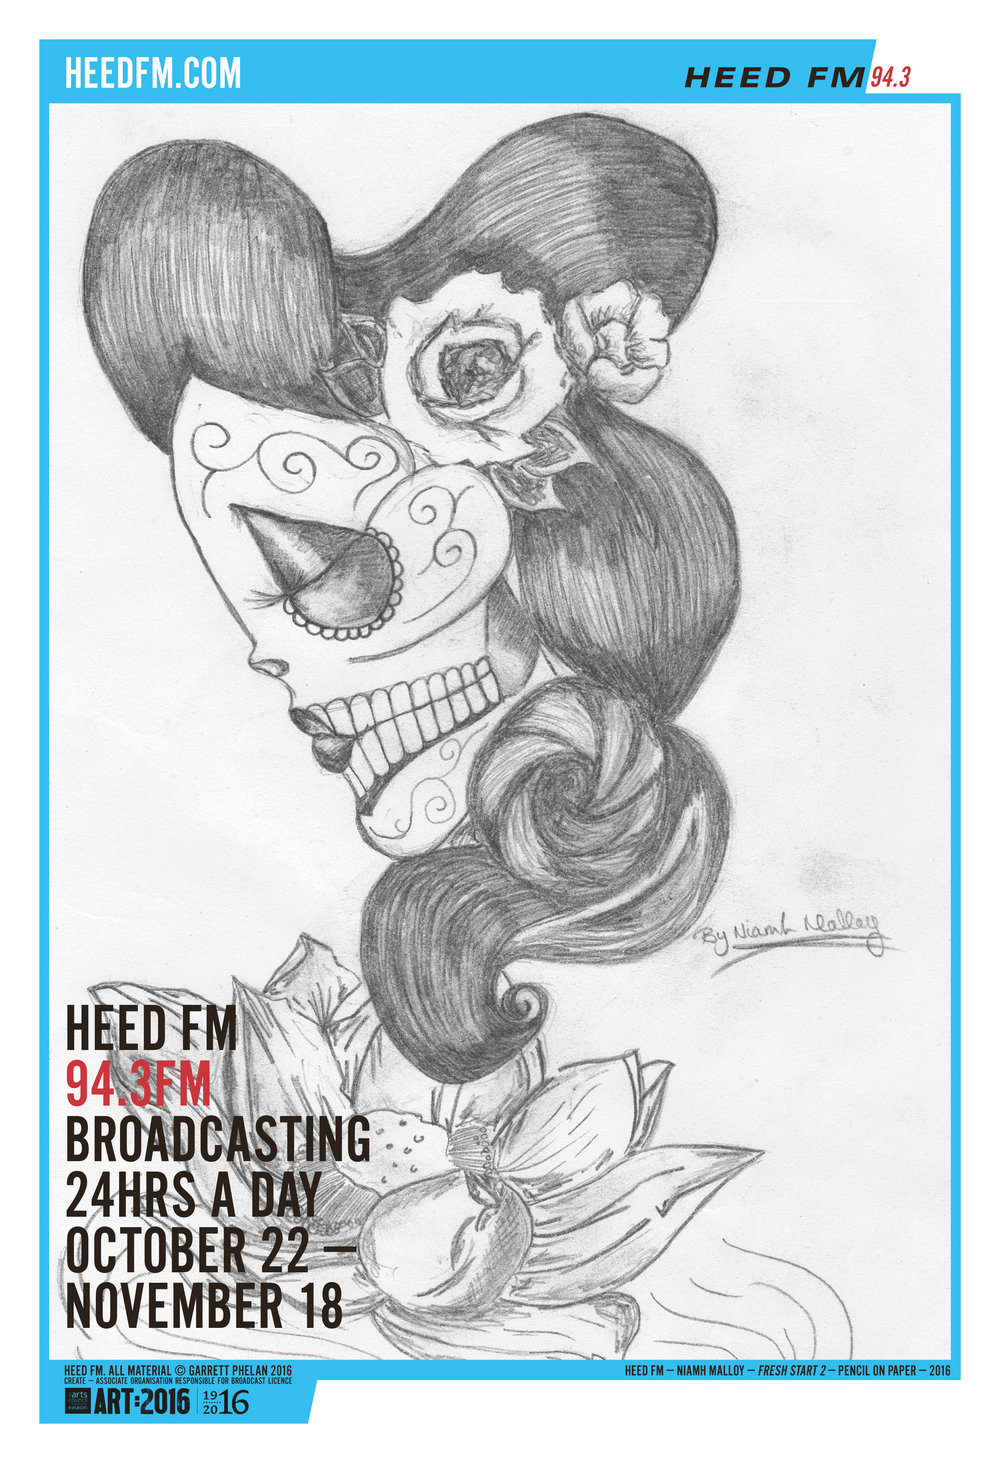 heed fm 4 sheets artwork-6.jpg